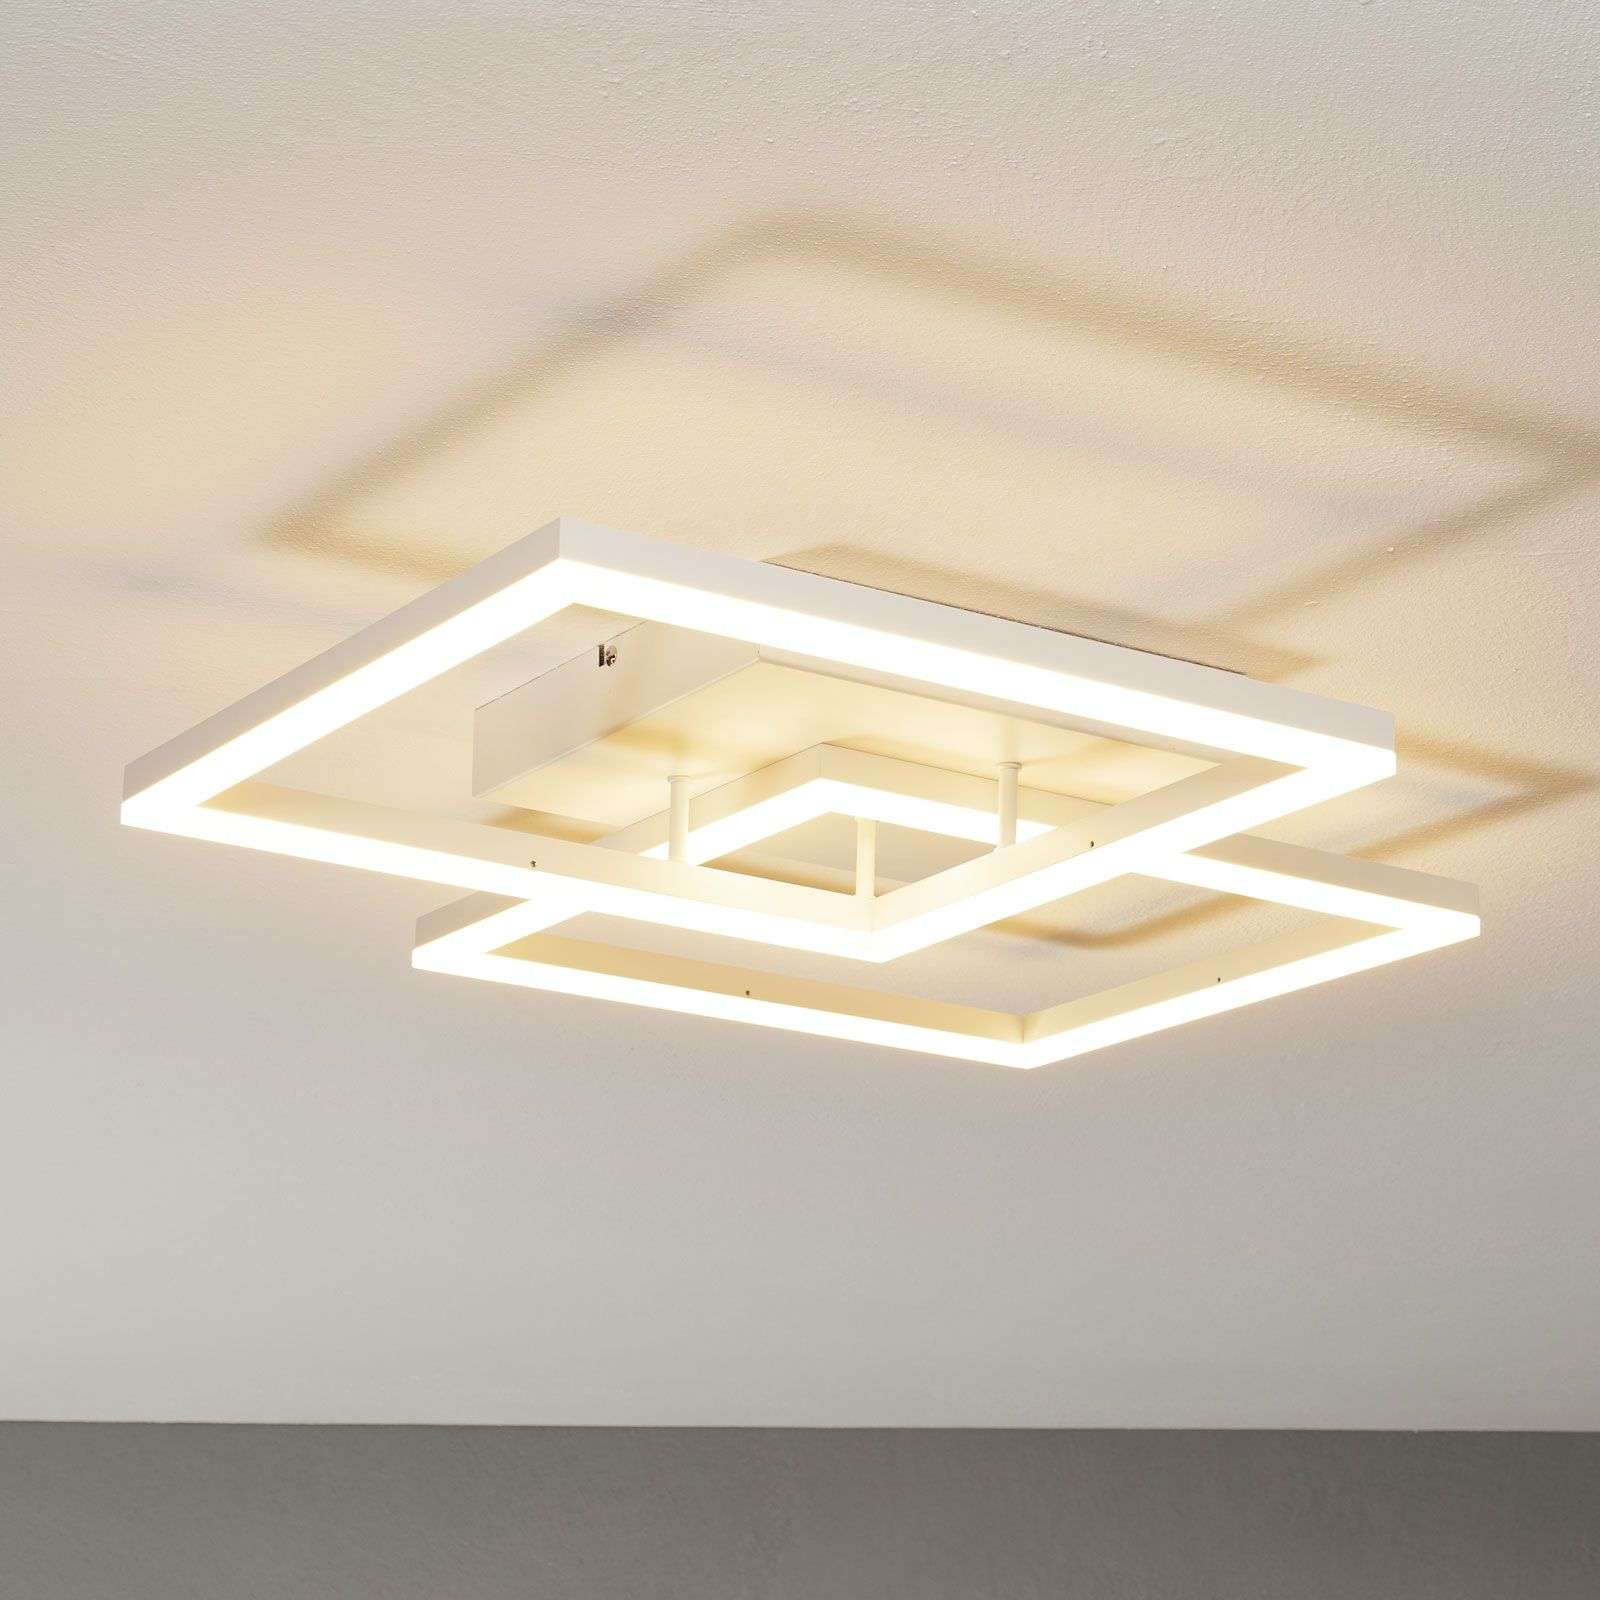 Moderne LED plafondlamp Bard in wit